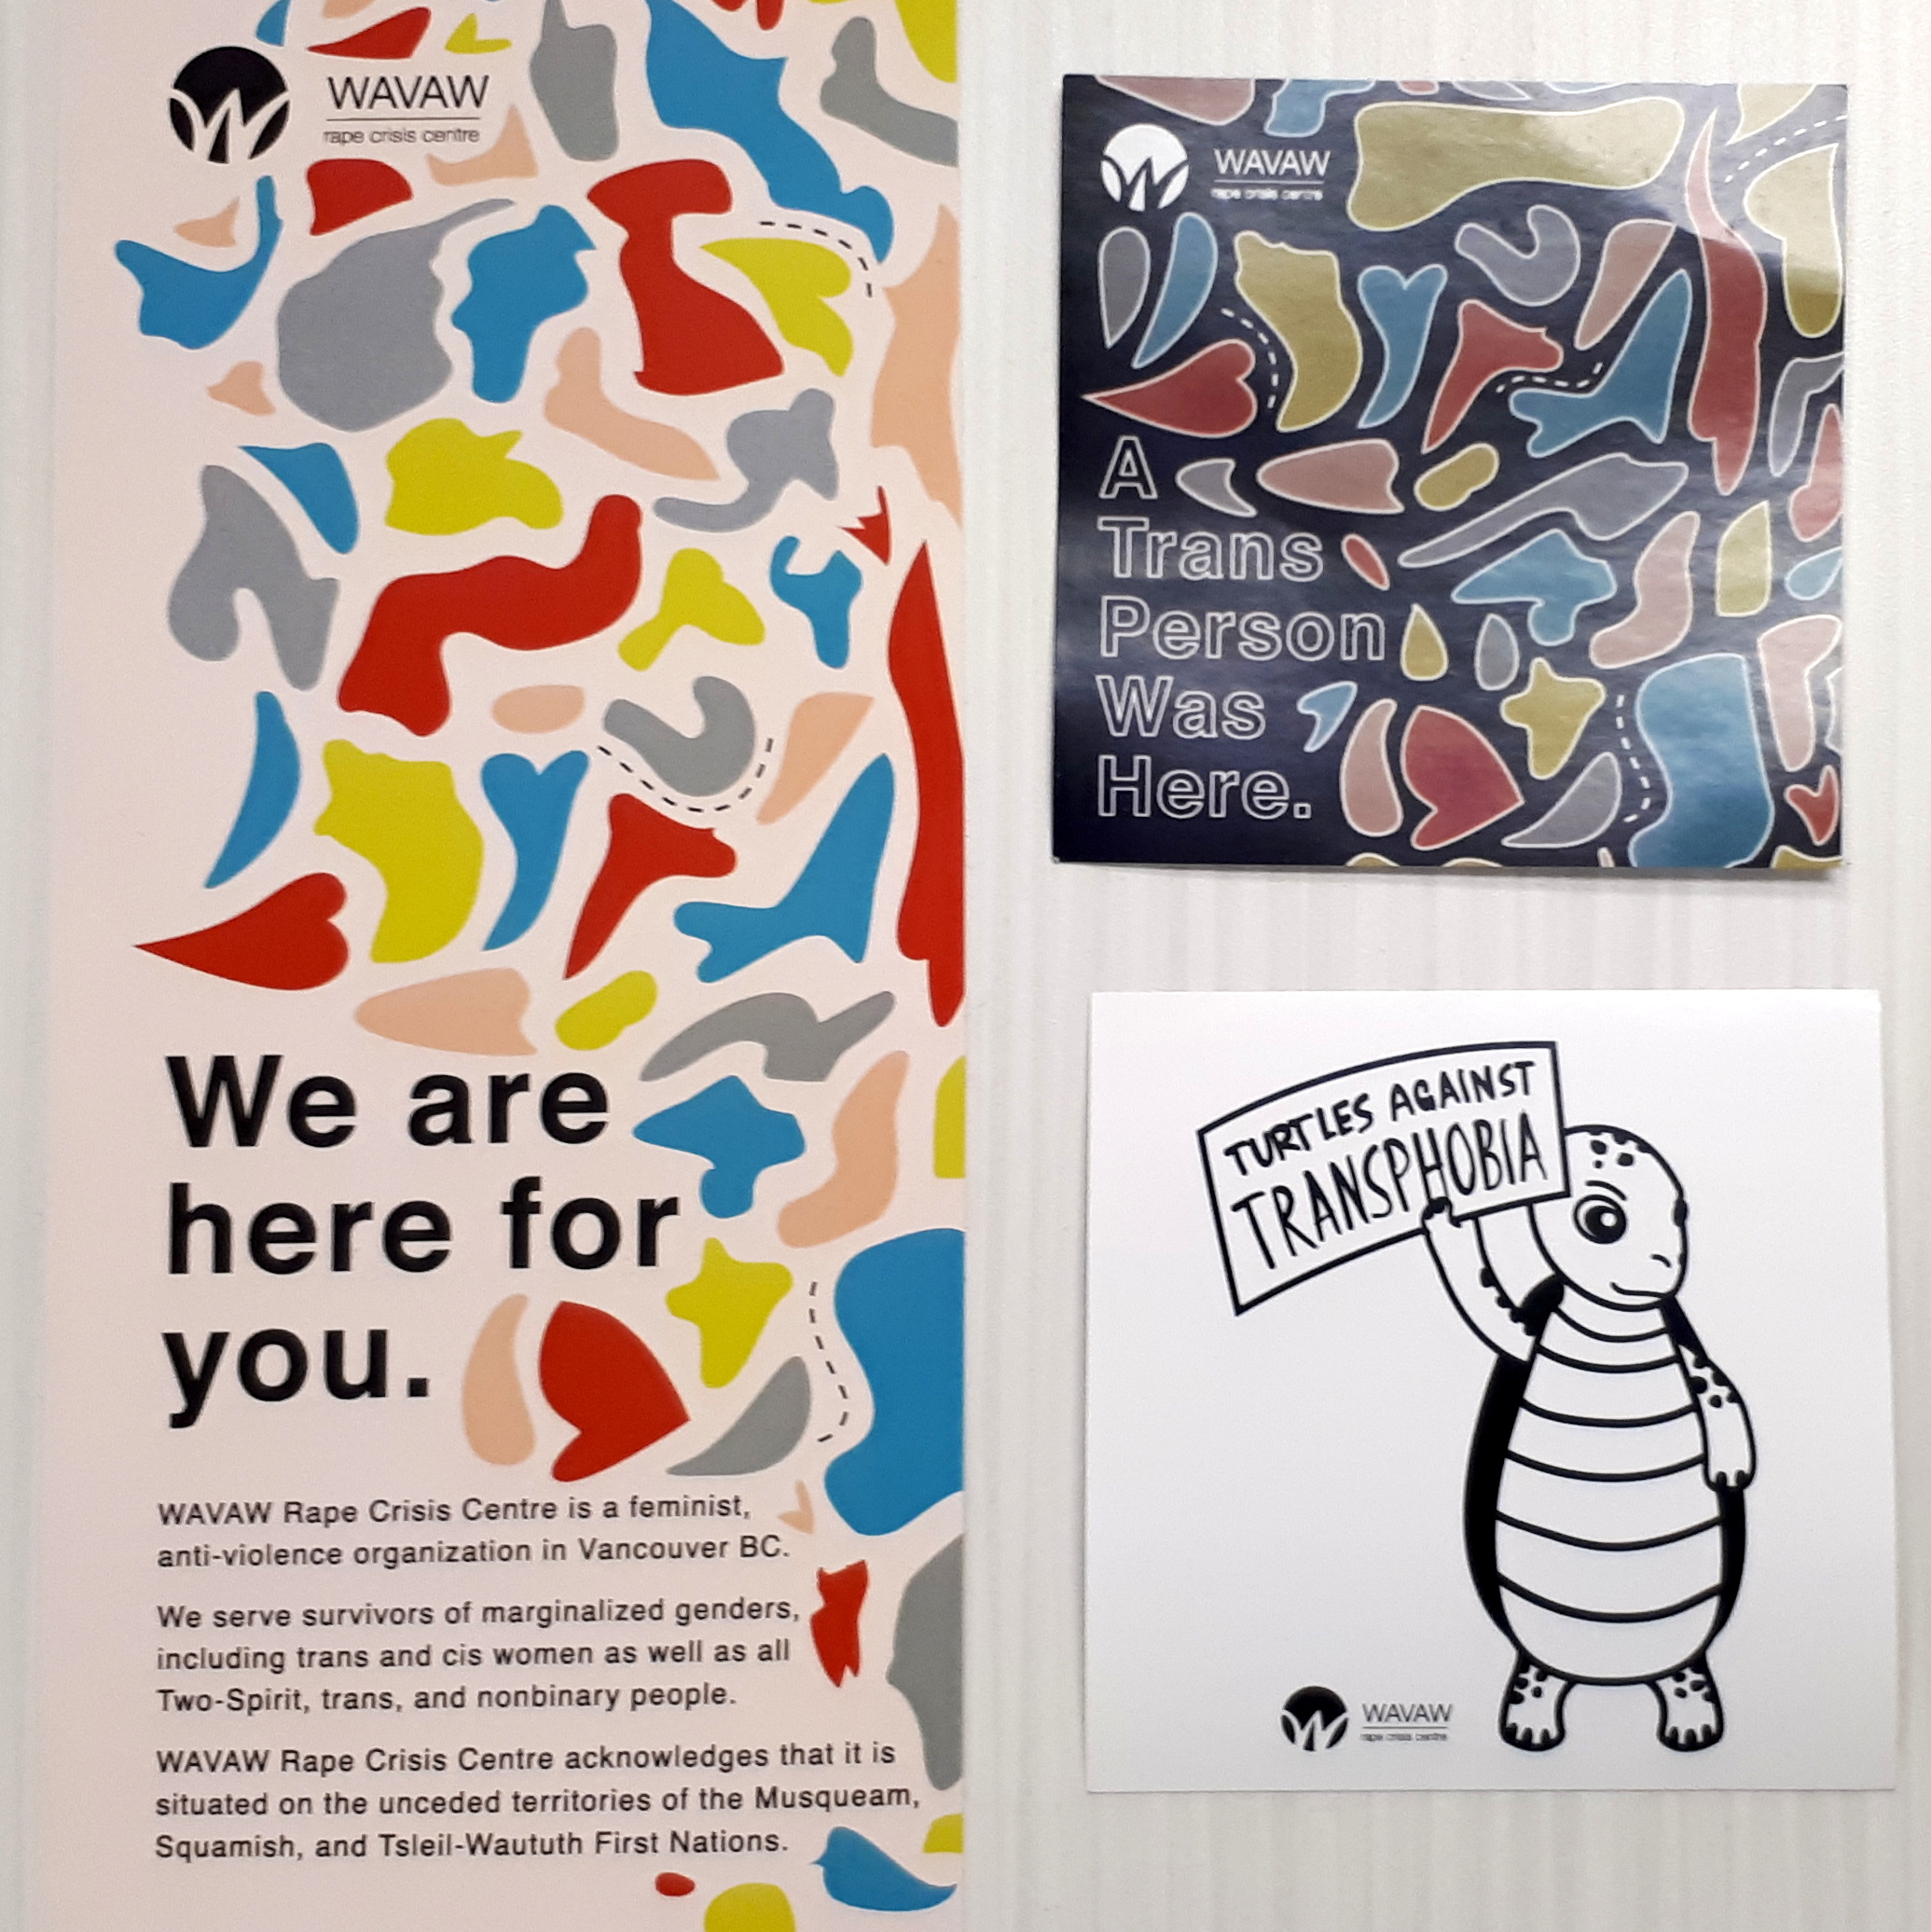 """Photo of three posters on a wall. One says """"We are here for you,"""" one is a drawing of turtle that reads """"turtles against transphobia,"""" and the last one reads """"a Trans person was here."""""""